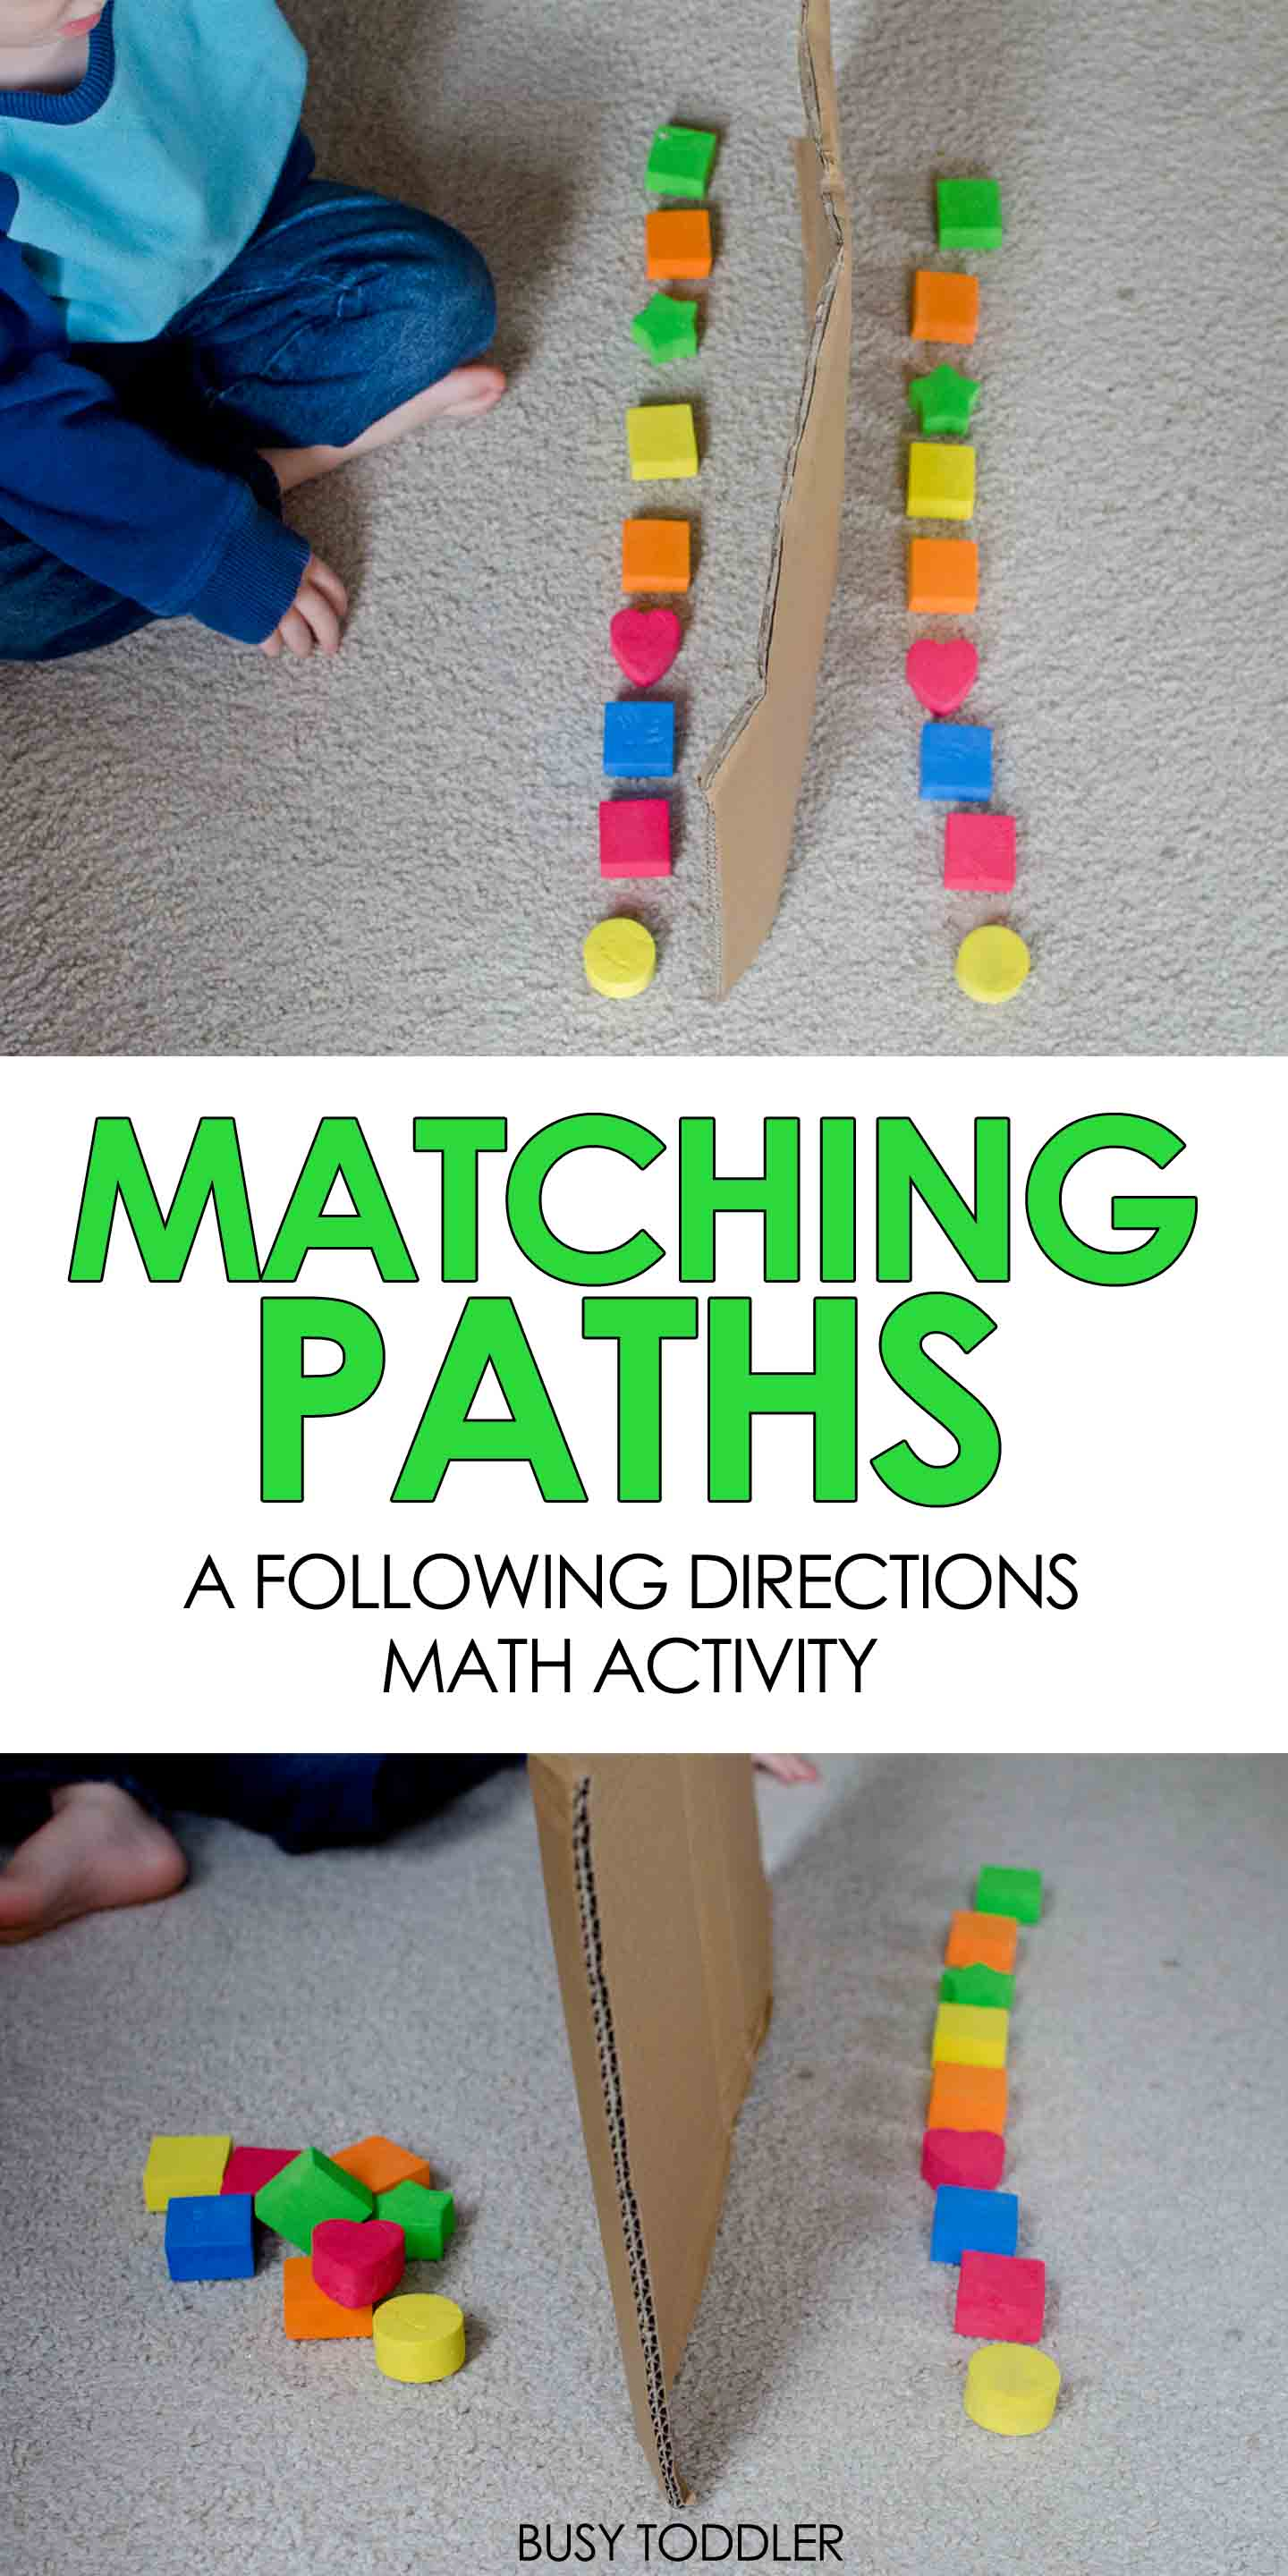 Matching Paths Easy Math Activity